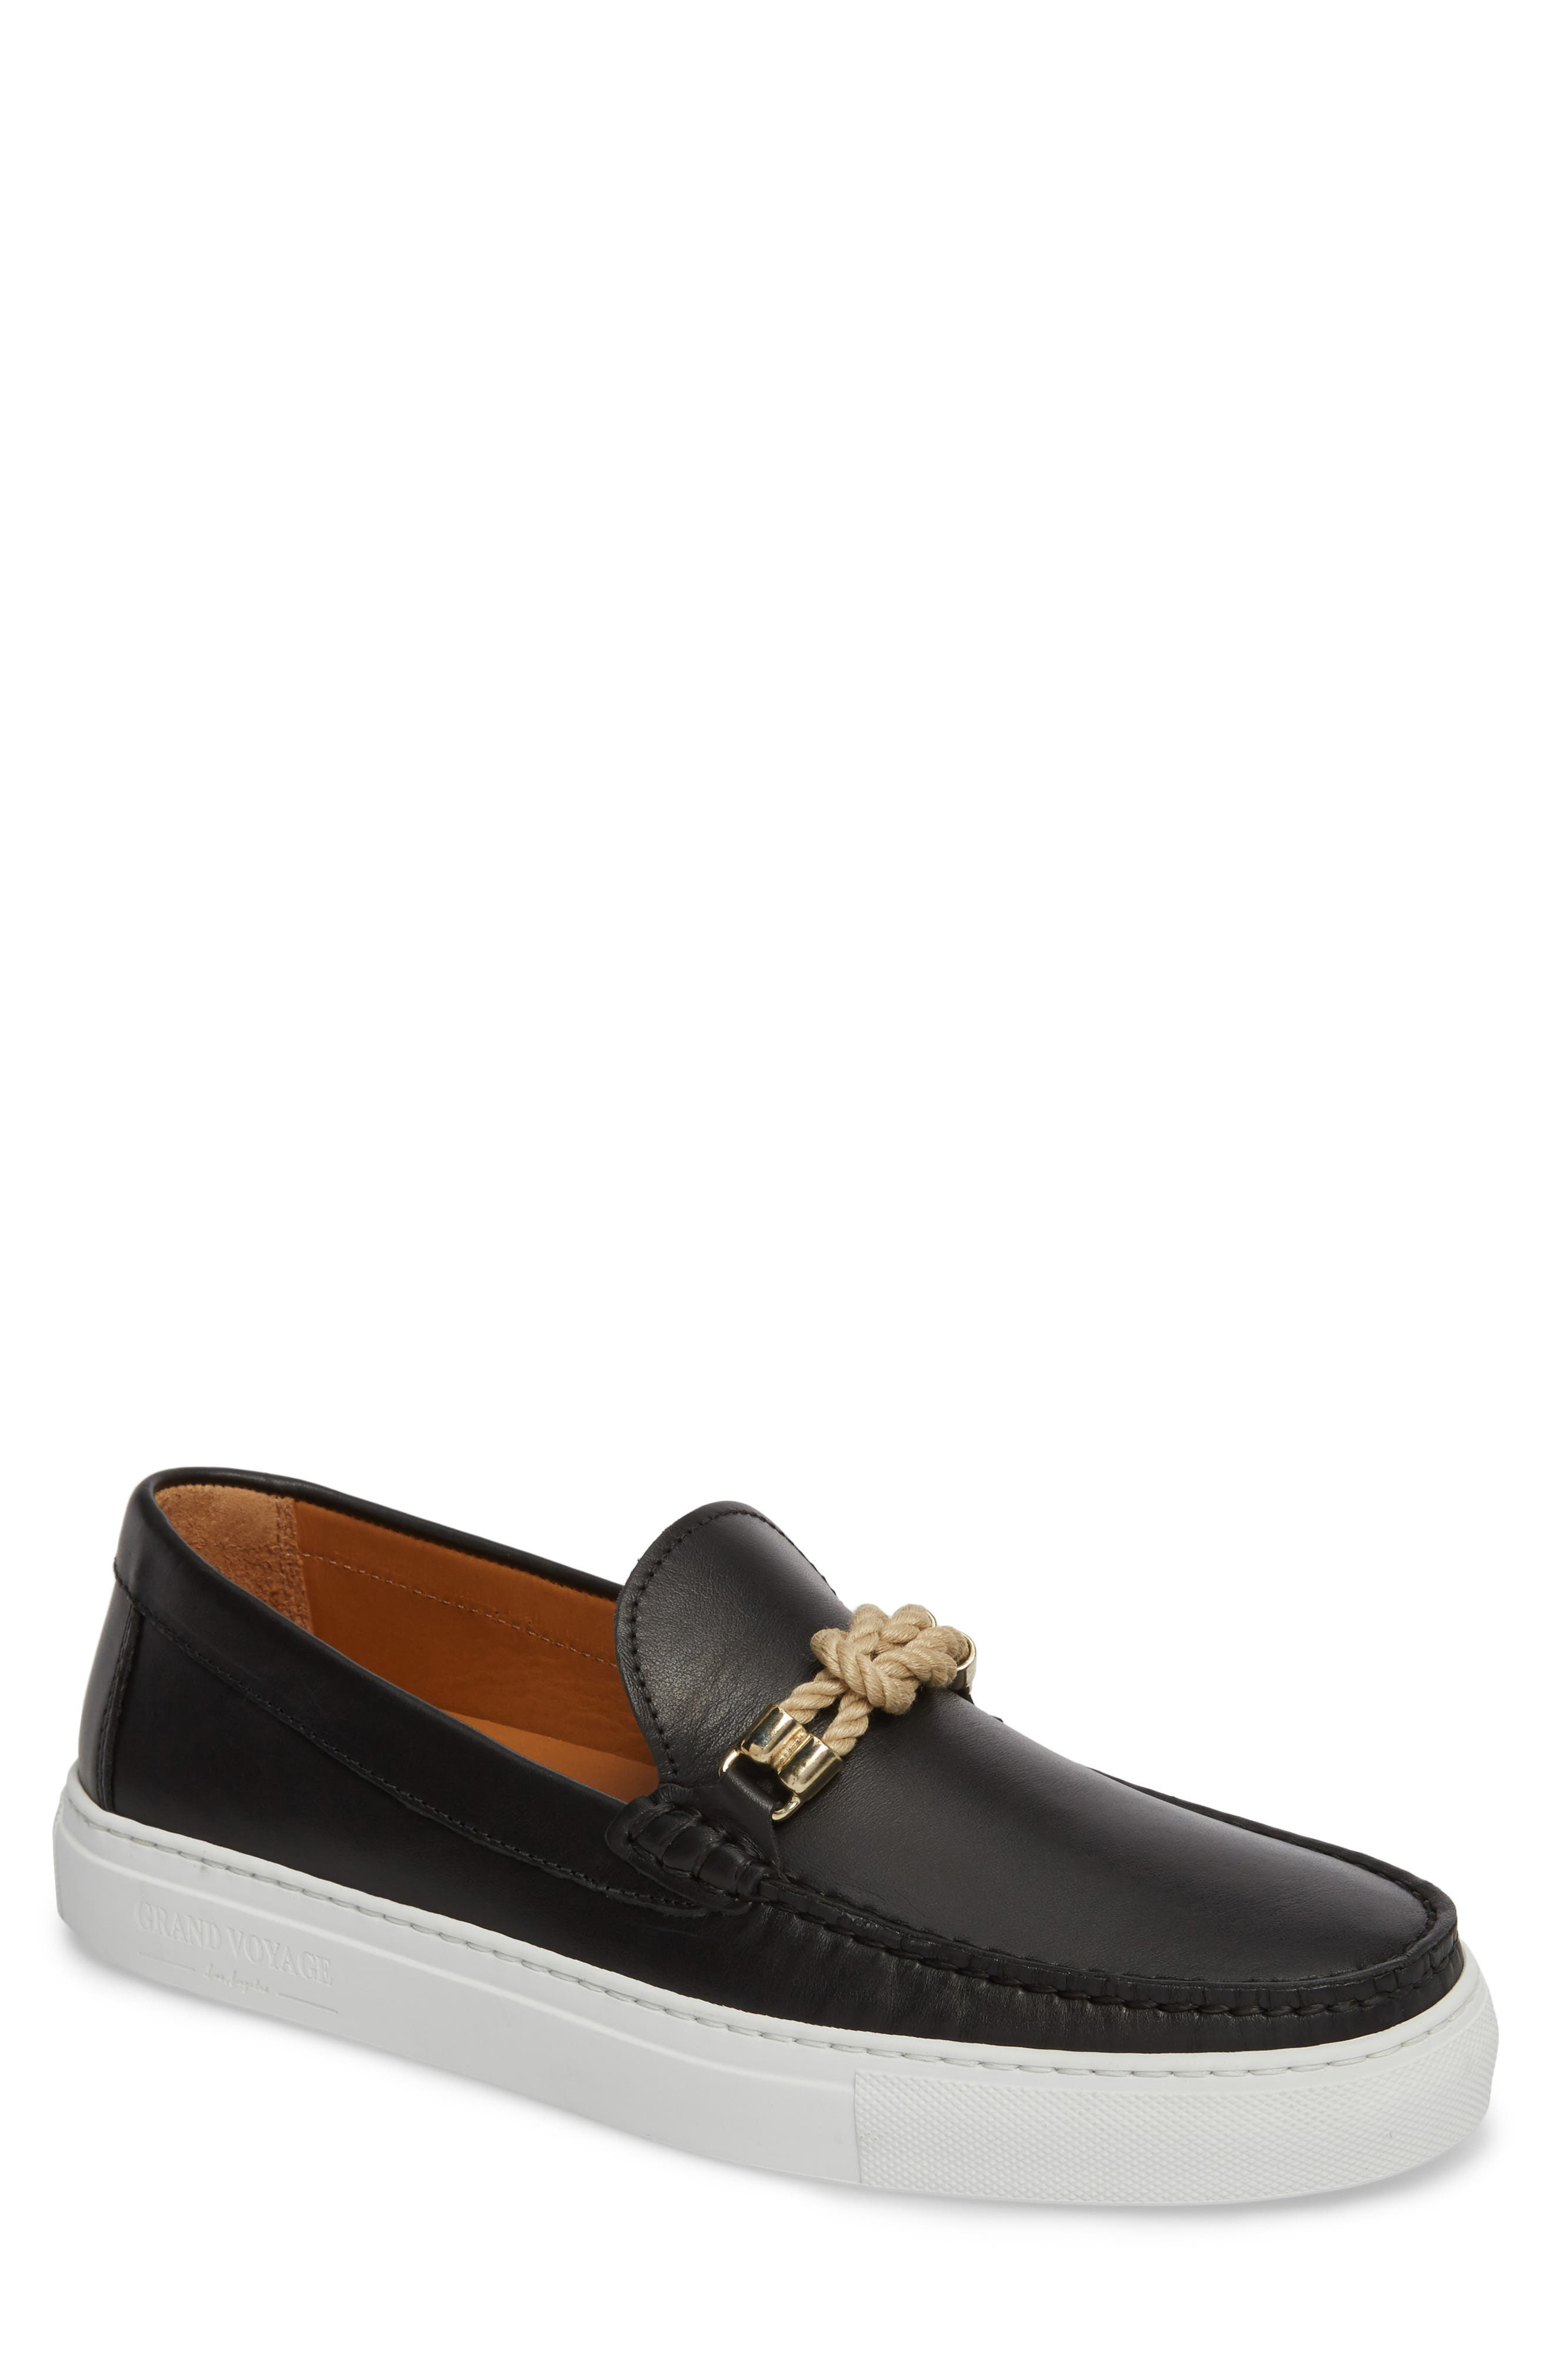 Bitton Square Knot Loafer,                         Main,                         color, BLACK LEATHER